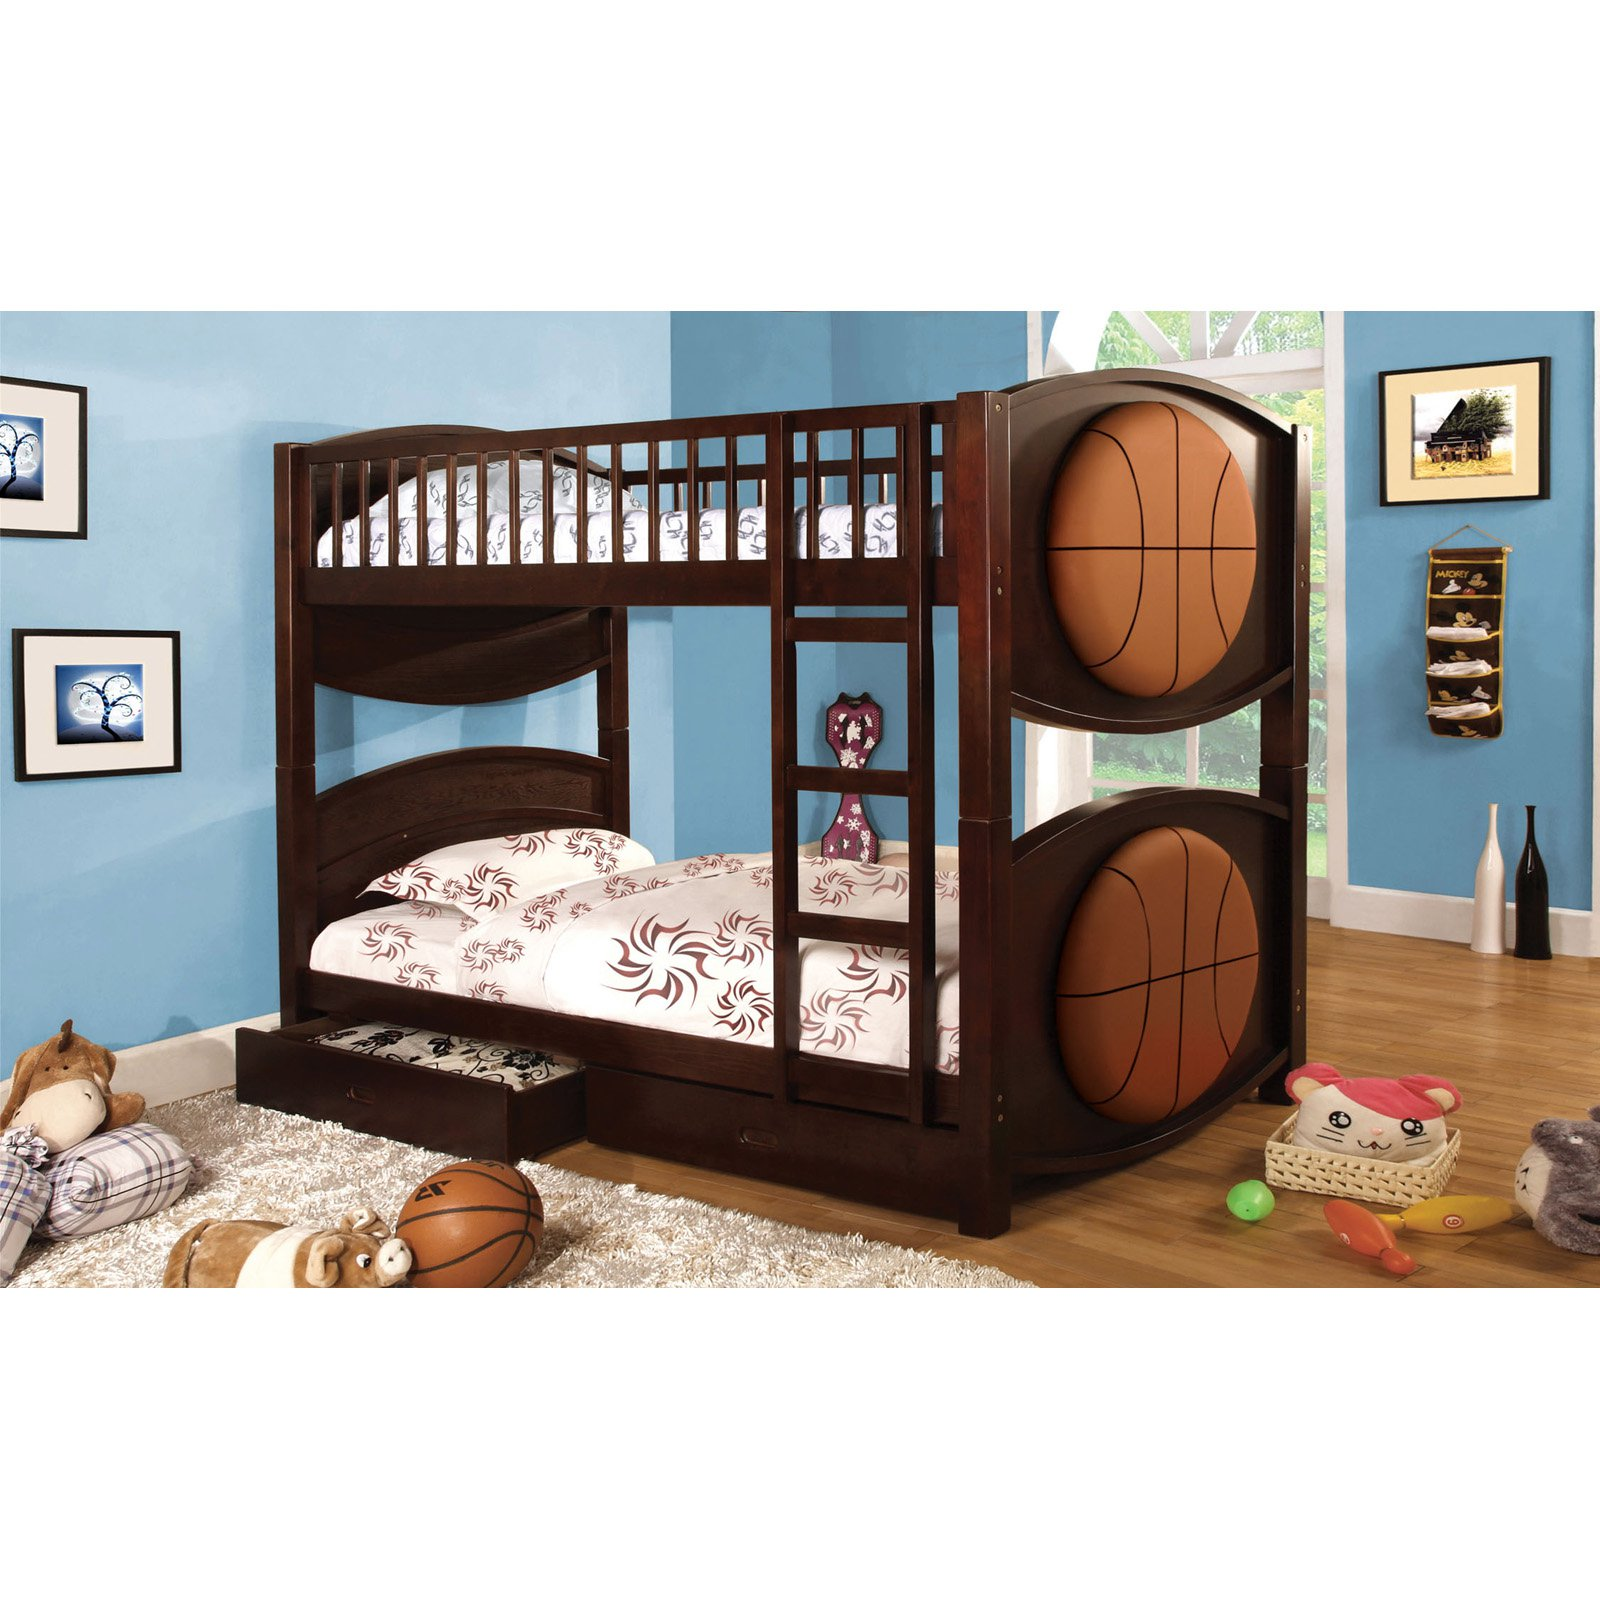 Furniture Of America Basketball Twin Over Twin Bunk Bed With Storage Drawers Walmart Com Walmart Com